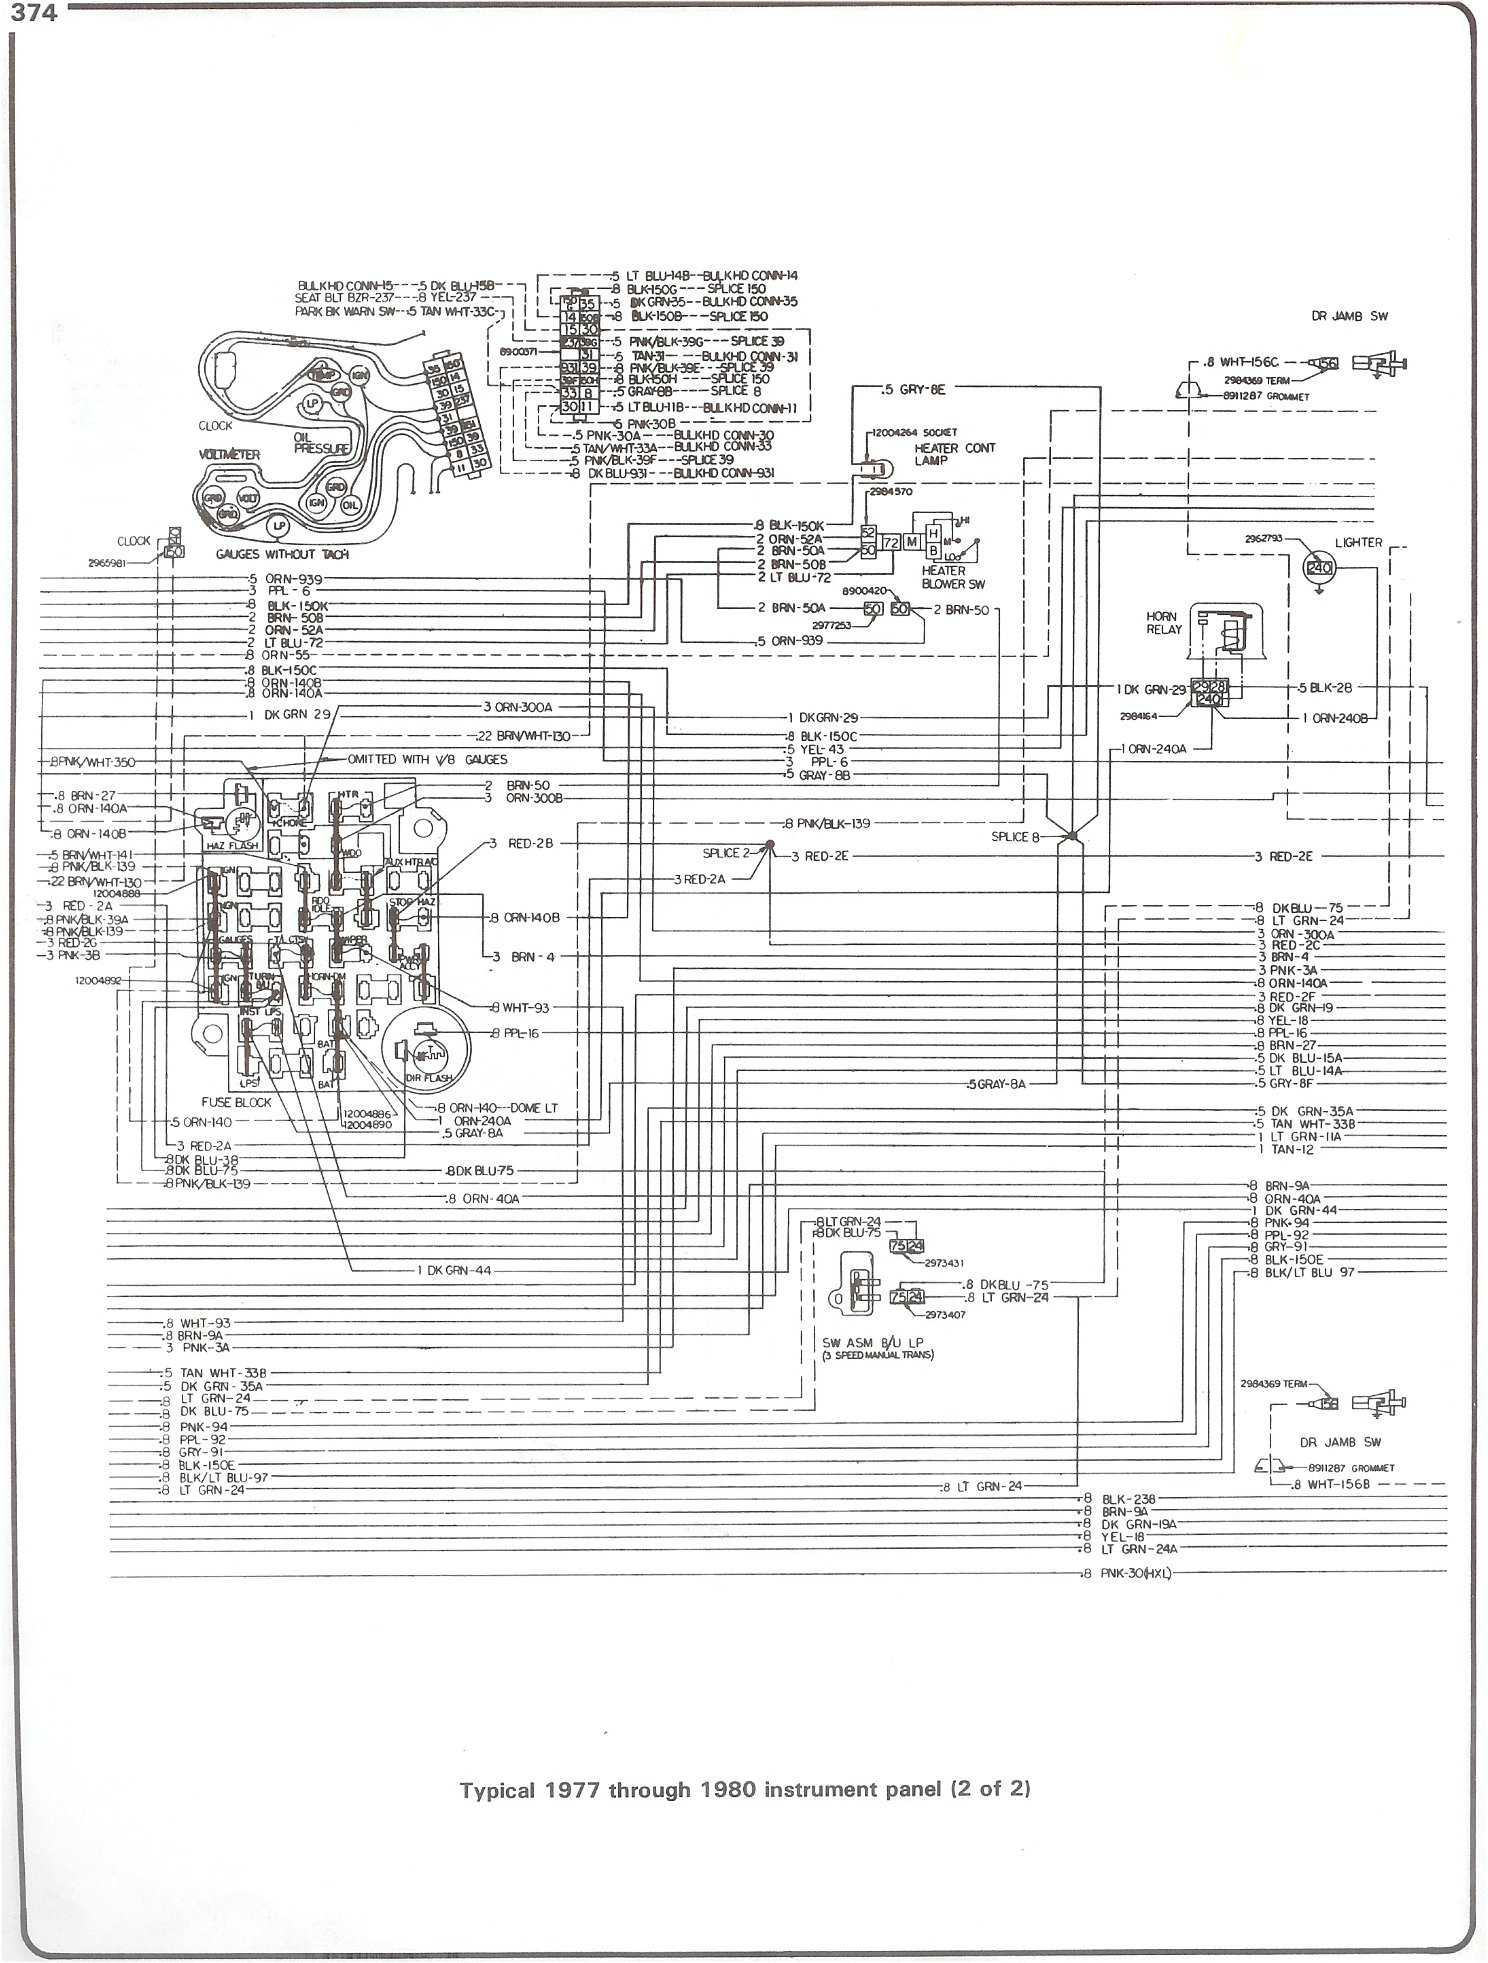 1982 K5 Blazer Wiring Diagram Lighting Library Exhaust System Http Wwwchicagocorvettenet Diagramviewphp 77 80 Intrument Panel Page 2